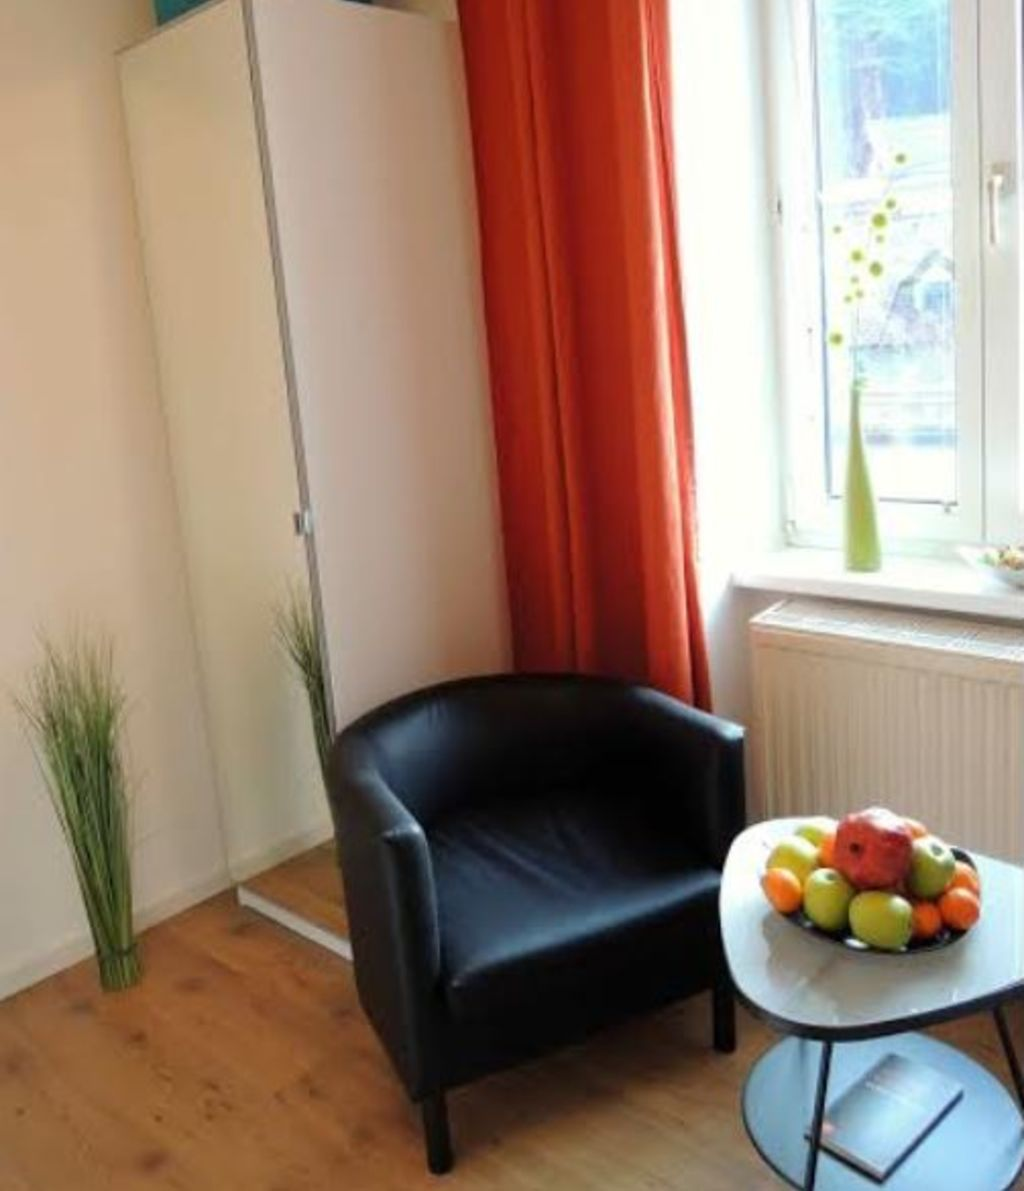 image 4 furnished 1 bedroom Apartment for rent in Modling, Lower Austria